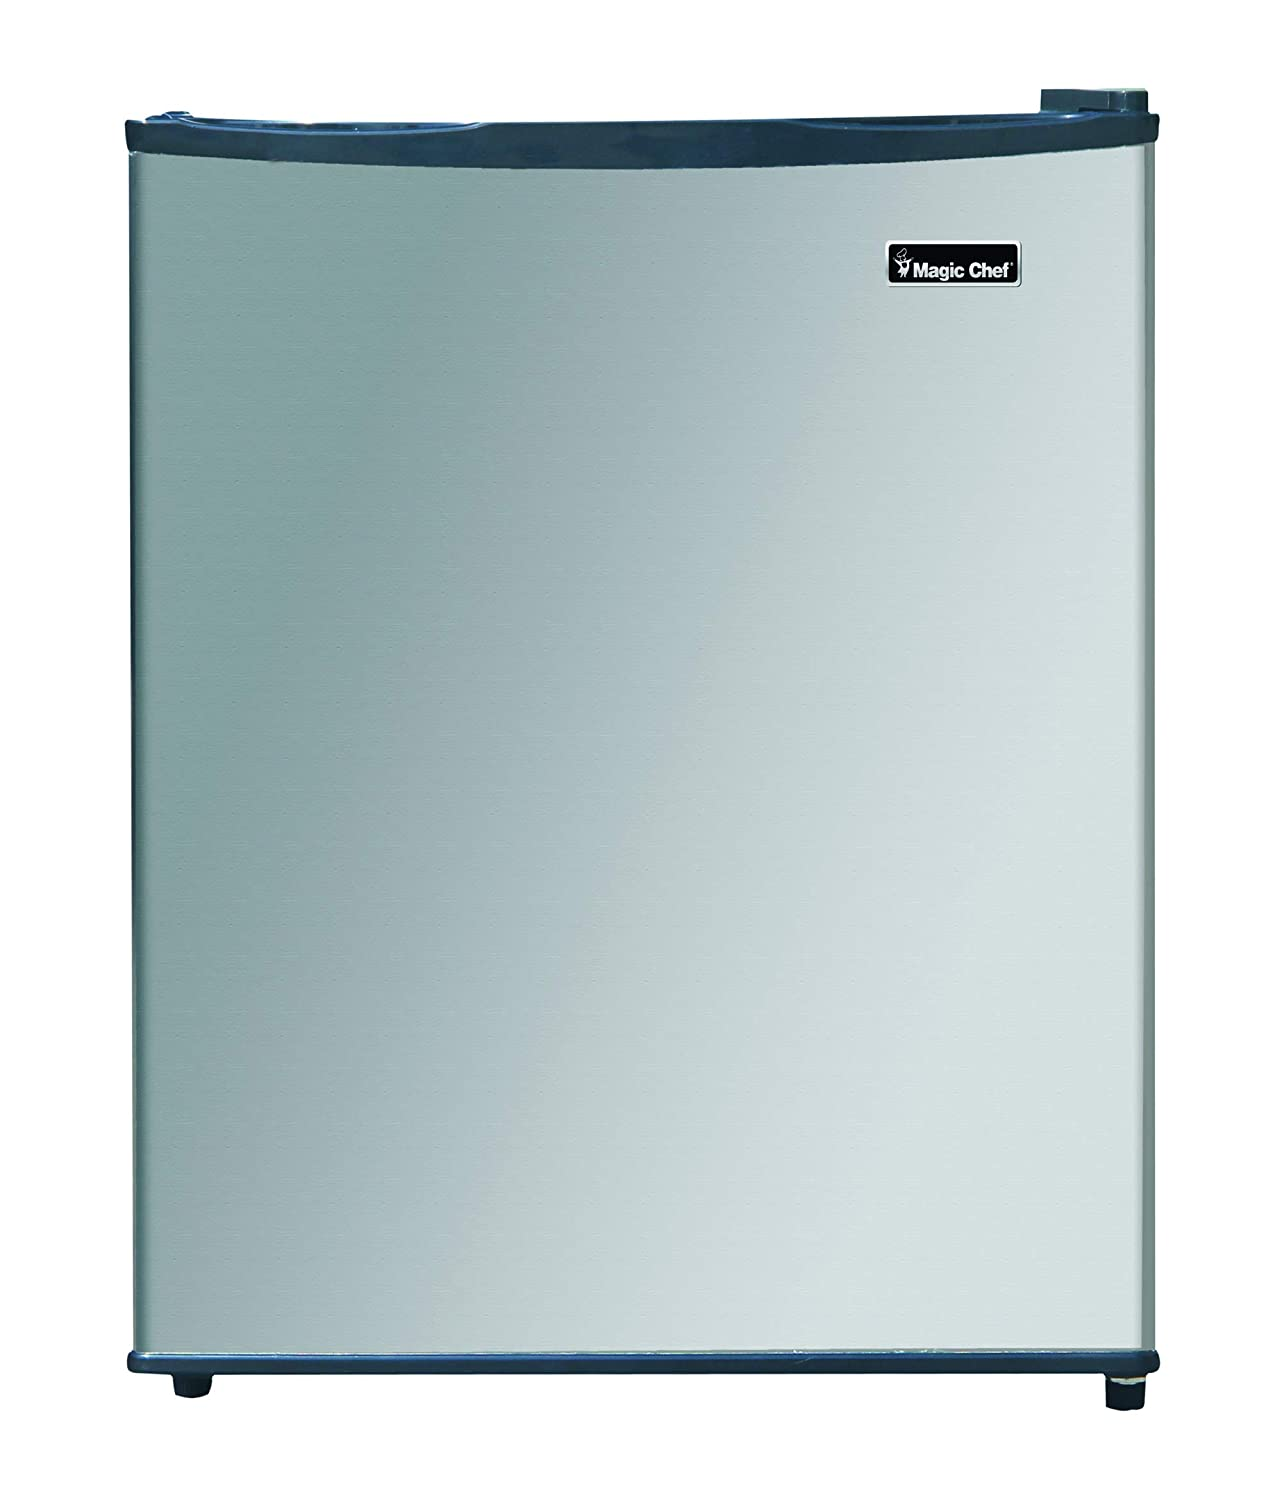 Magic Chef MCAR240SE2 Energy Star Stainless Steel Door 2.4 Cu. Ft. Mini All-Refrigerator